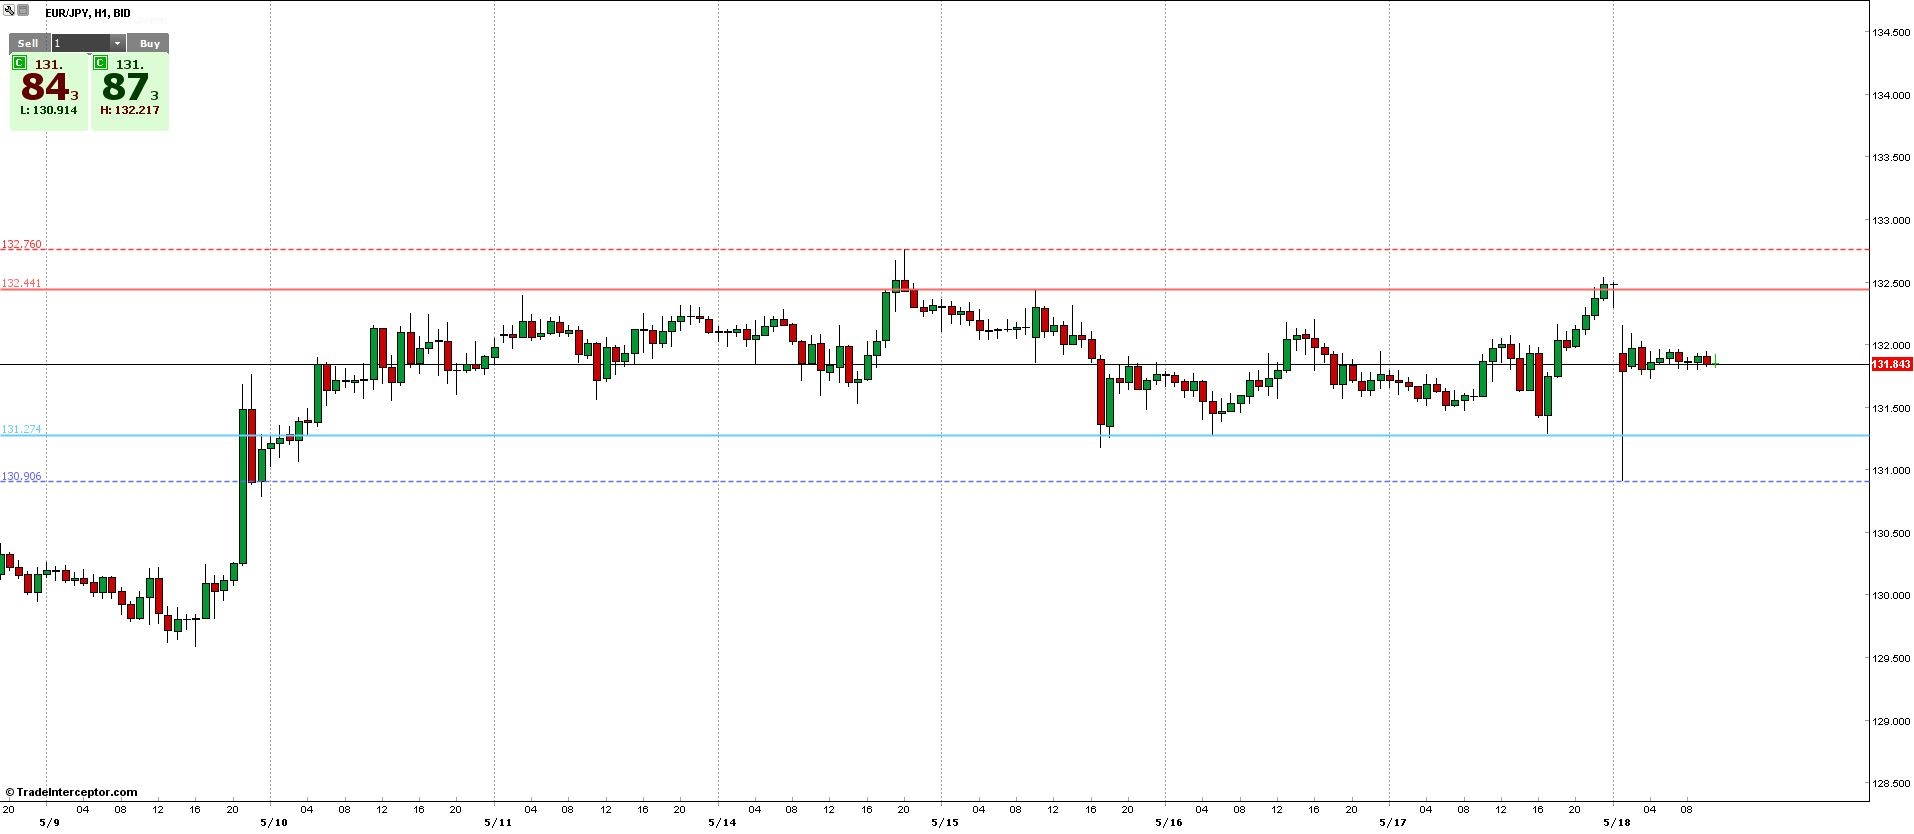 EUR/JPY Forecast 20 May 2013